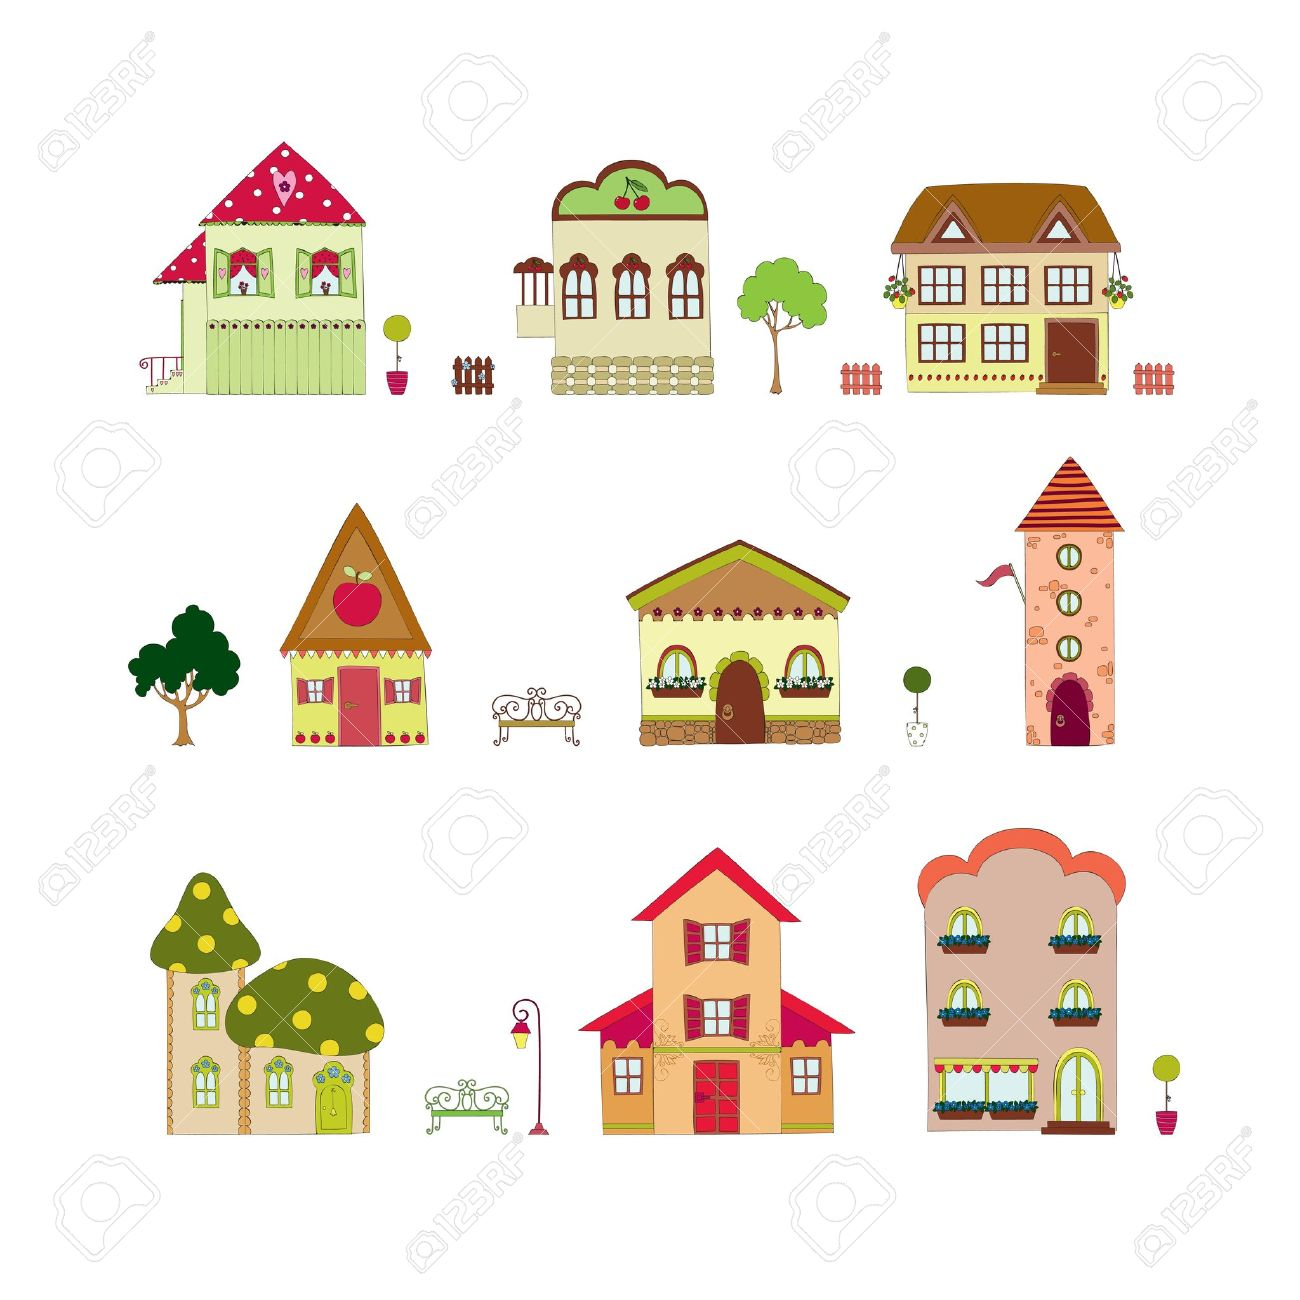 Cartoon Isolated Houses Royalty Free Cliparts, Vectors, And Stock.